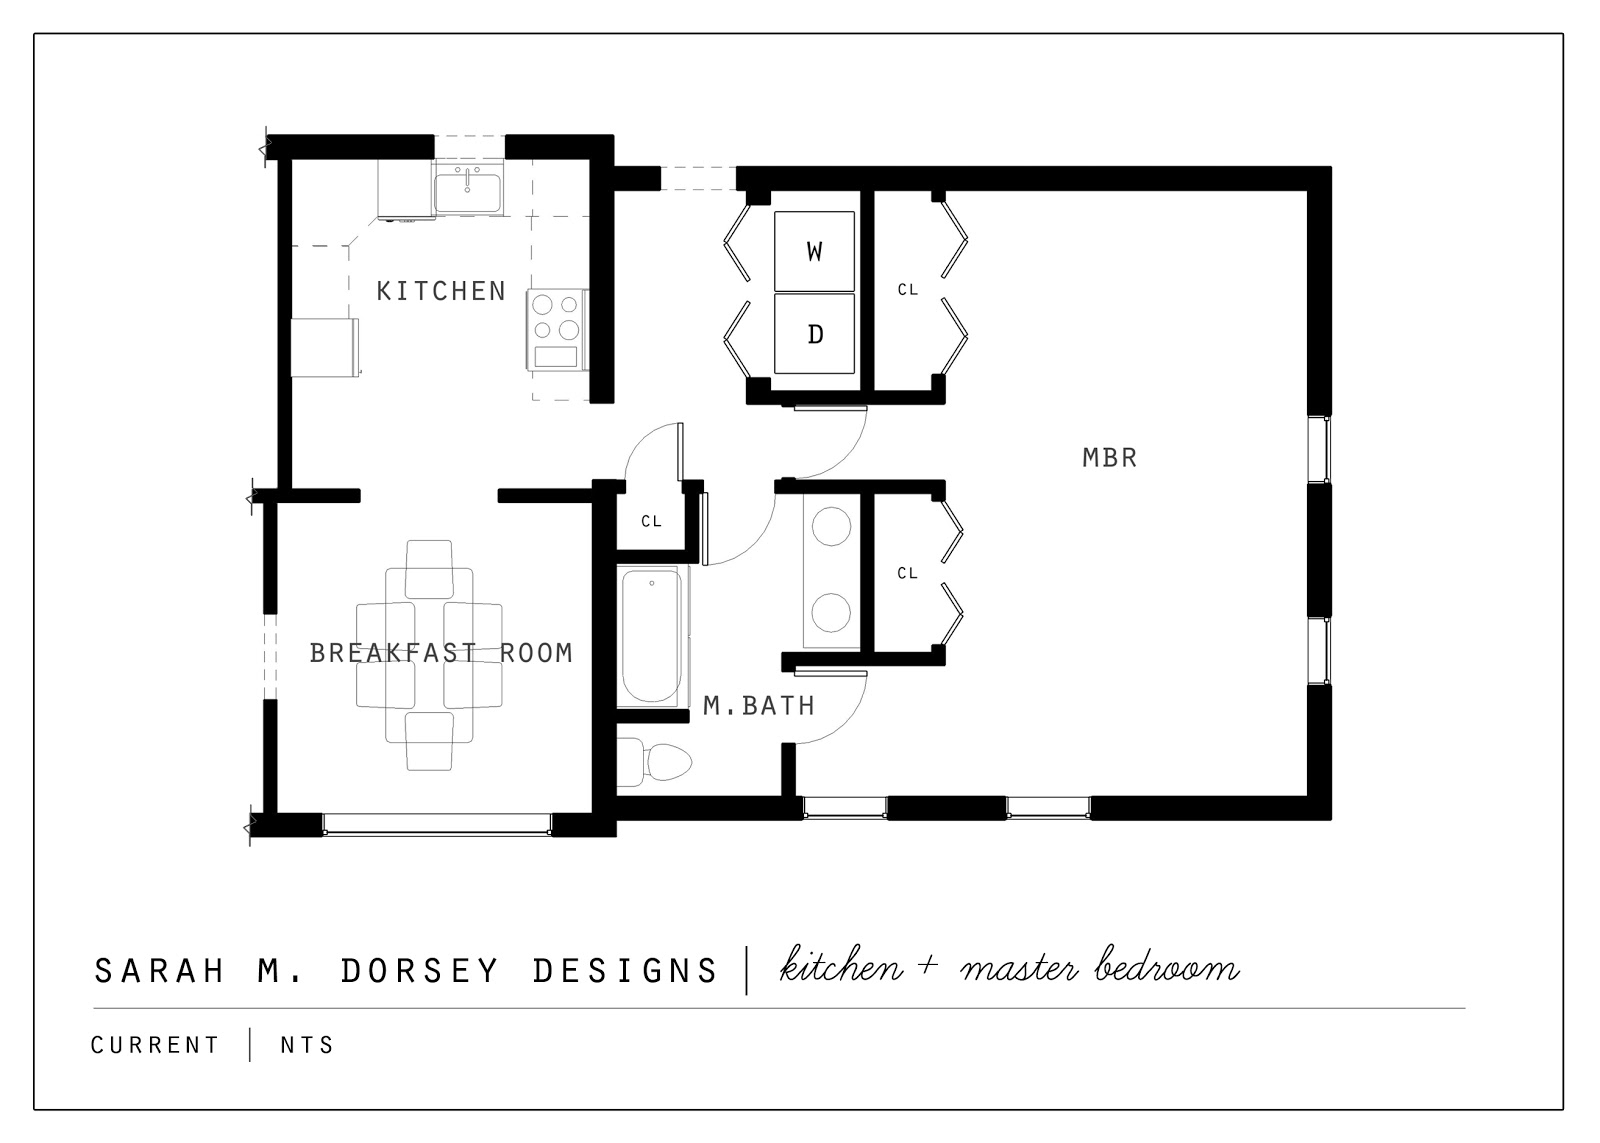 Sarah m dorsey designs proposed kitchen and master suite for Standard home plans